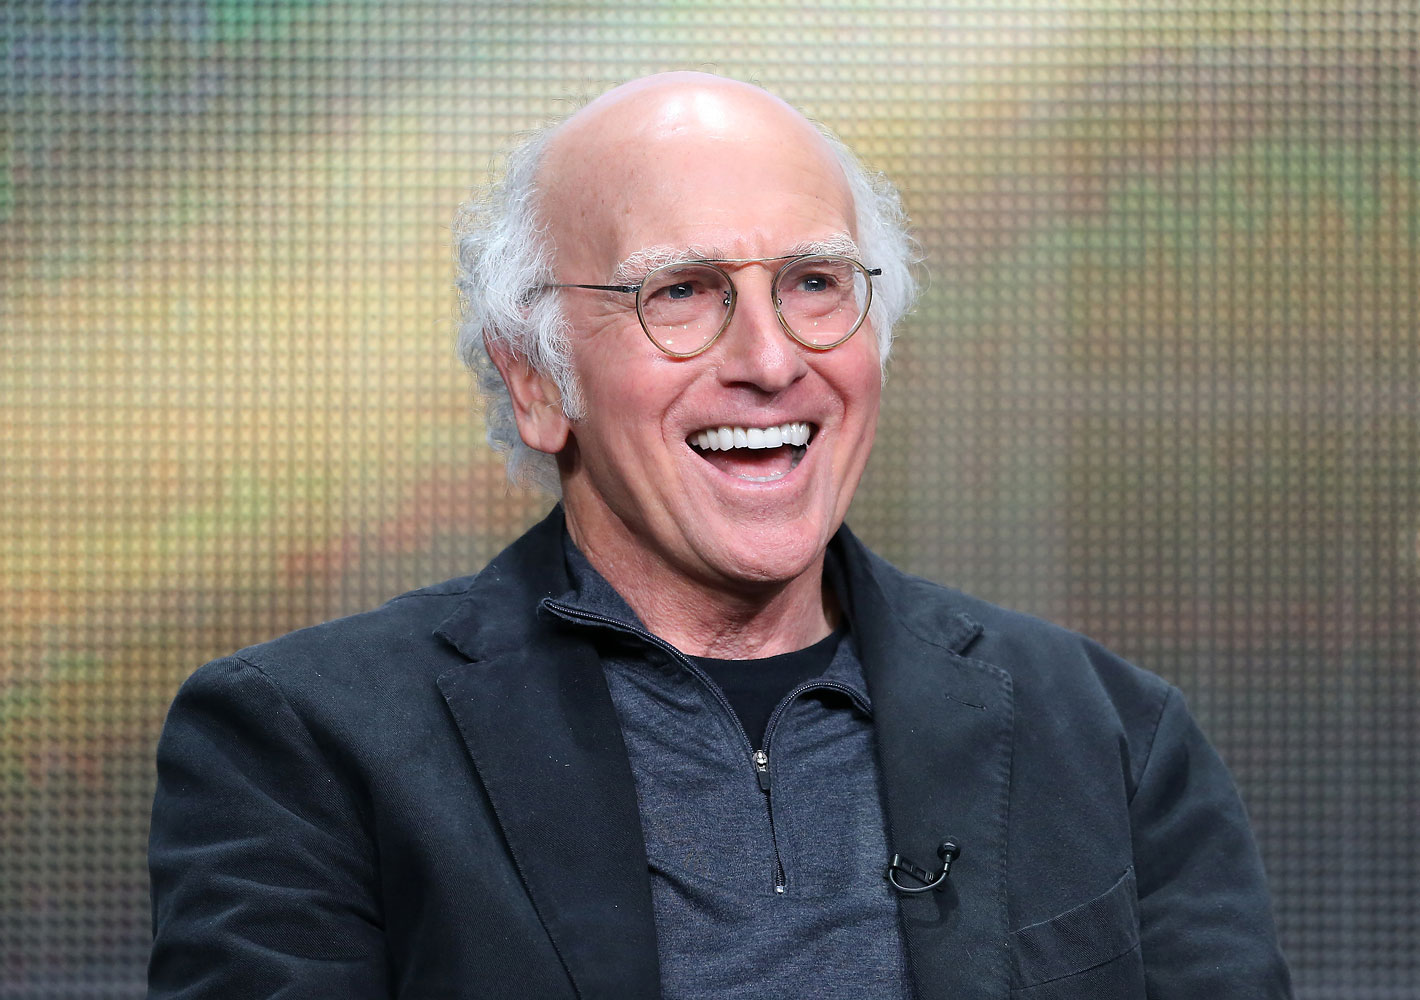 Larry David onstage at the 2013 Summer Television Critics Association tour on July 25, 2013 in Beverly Hills.